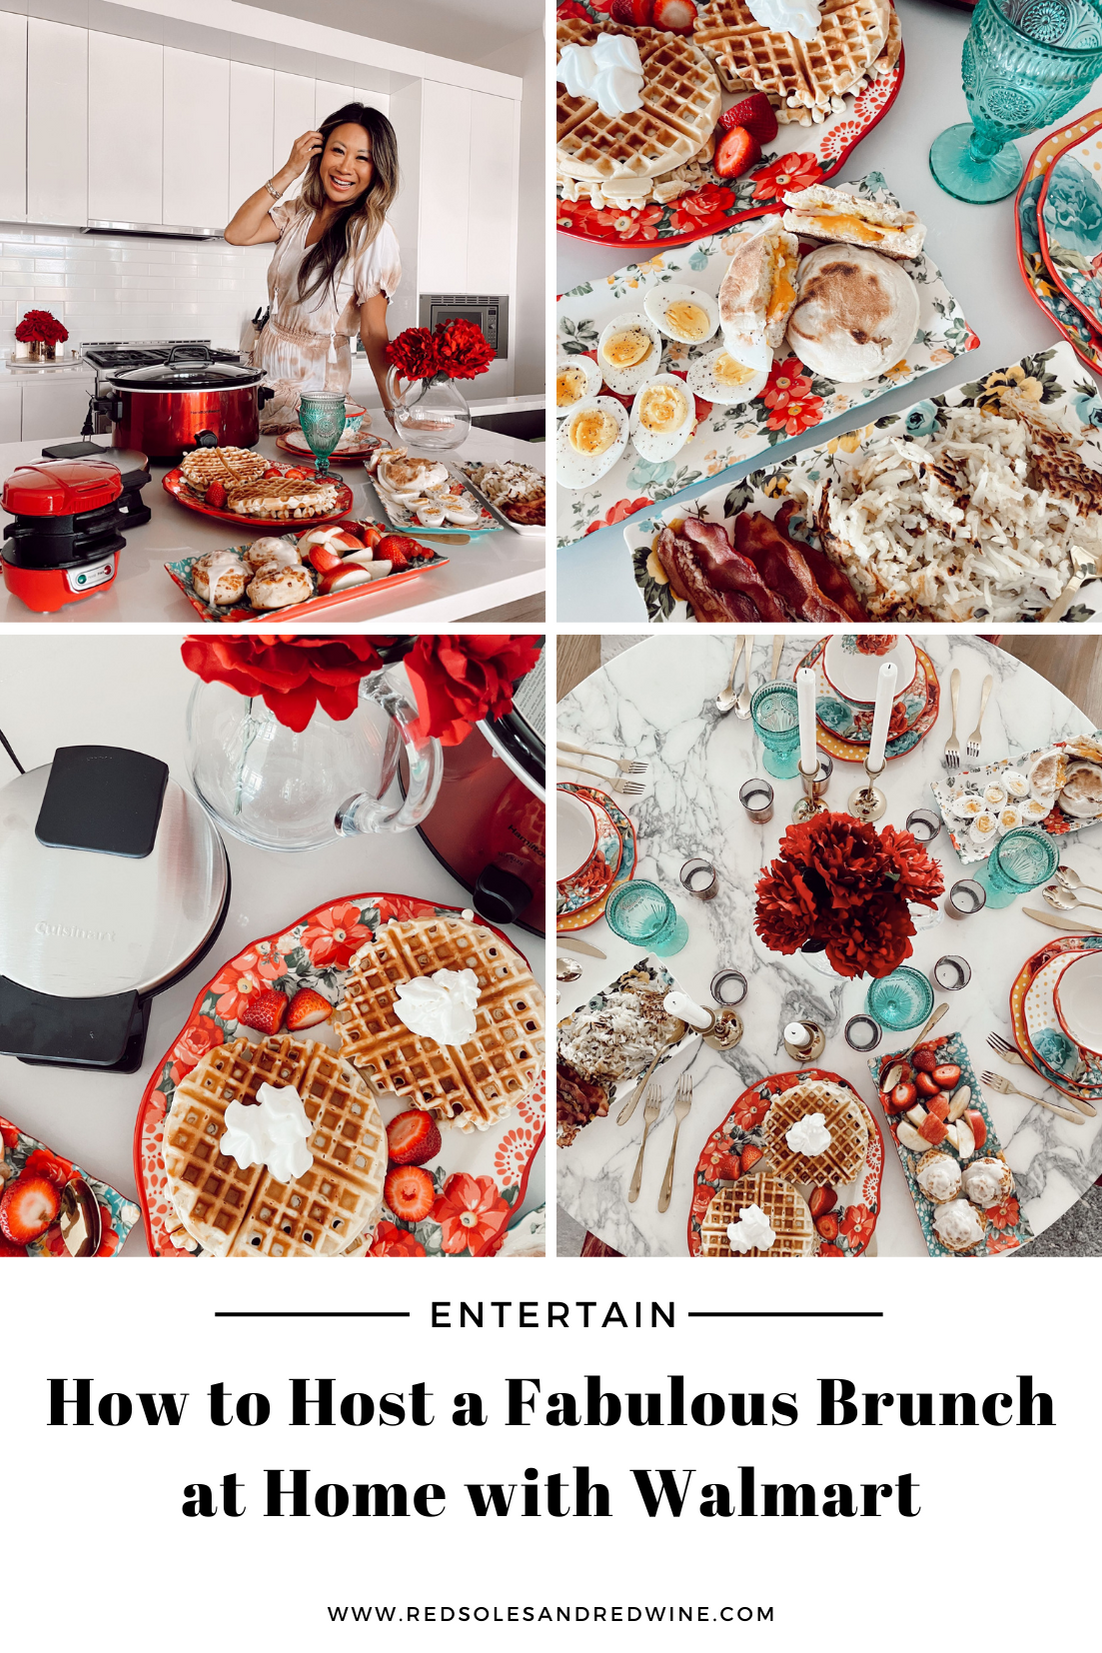 how to host an affordable brunch party, brunch party inspiration, how to host a fabulous brunch at home, pretty at home brunch set up, hosting at home with Walmart, brunch set up, brunch party ideas, glam brunch set up, glam breakfast set up, Walmart breakfast appliances, pretty kitchen serve wear, breakfast set up, Walmart cookware, Walmart cooking essentials, affordable cookware, Walmart home, Walmart kitchen appliances, Walmart tabletop finds, Pioneer Women Walmart, Walmart kitchen essentials, waffle bar ideas, waffle bar party, blue red and yellow tabletop, gold flatware, gold silverware table settings, Walmart review, Jen Worman, Red Soles and Red Wine